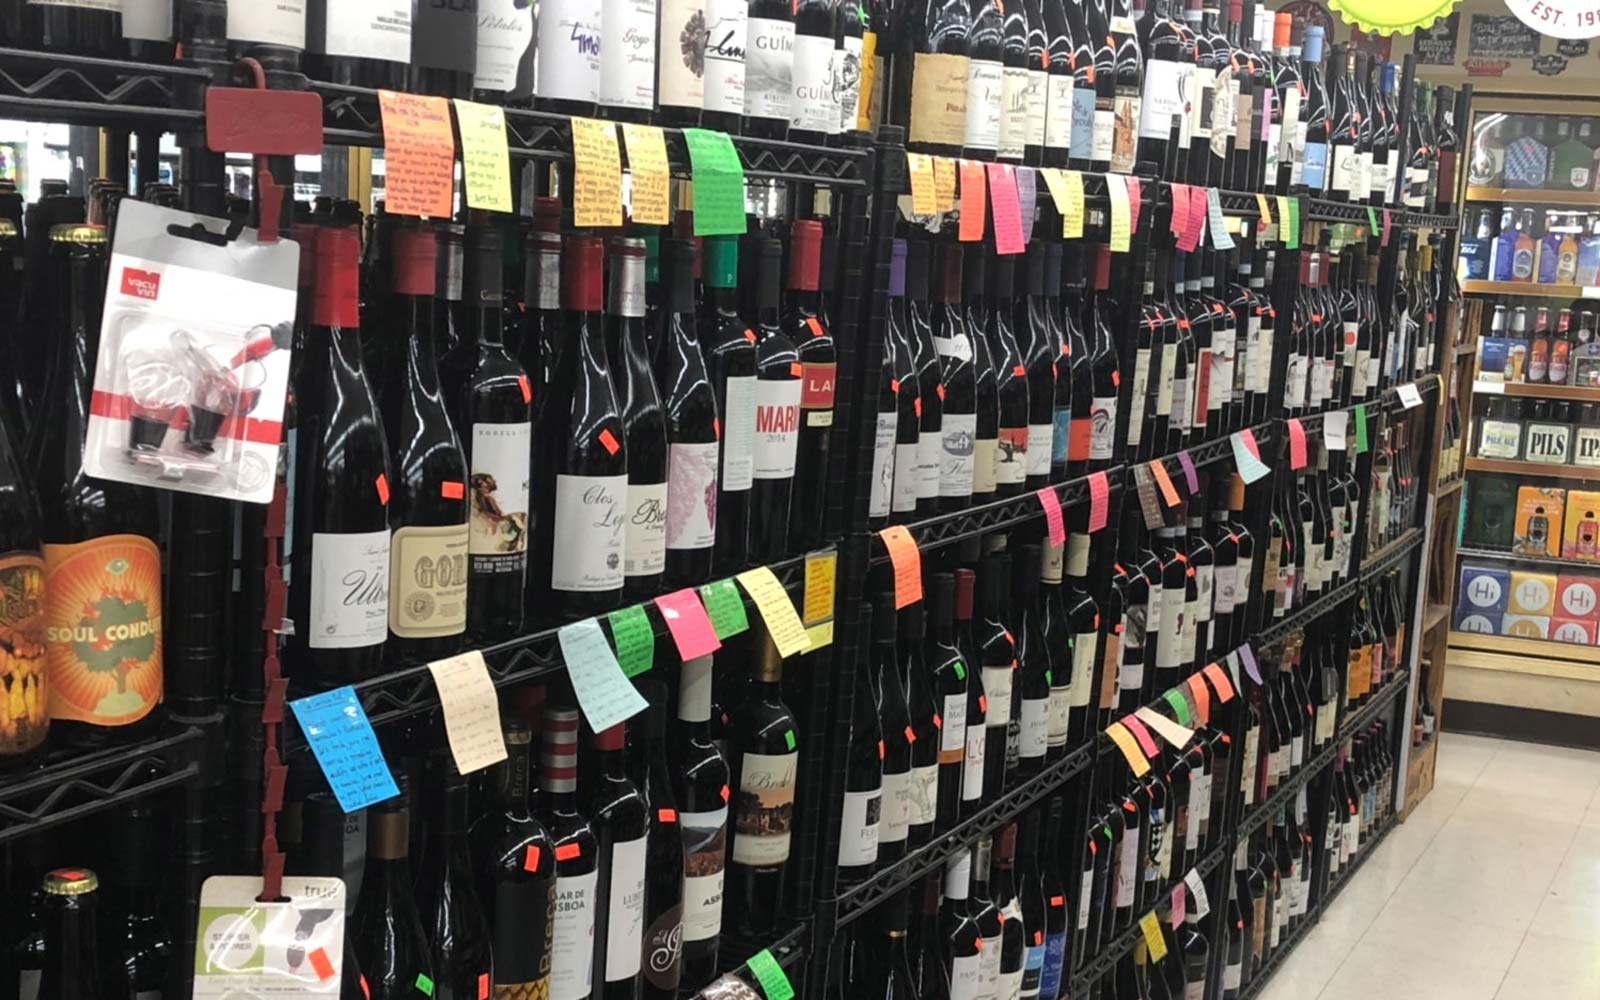 The Surprising Location of One of Austin's Best Wine Shops